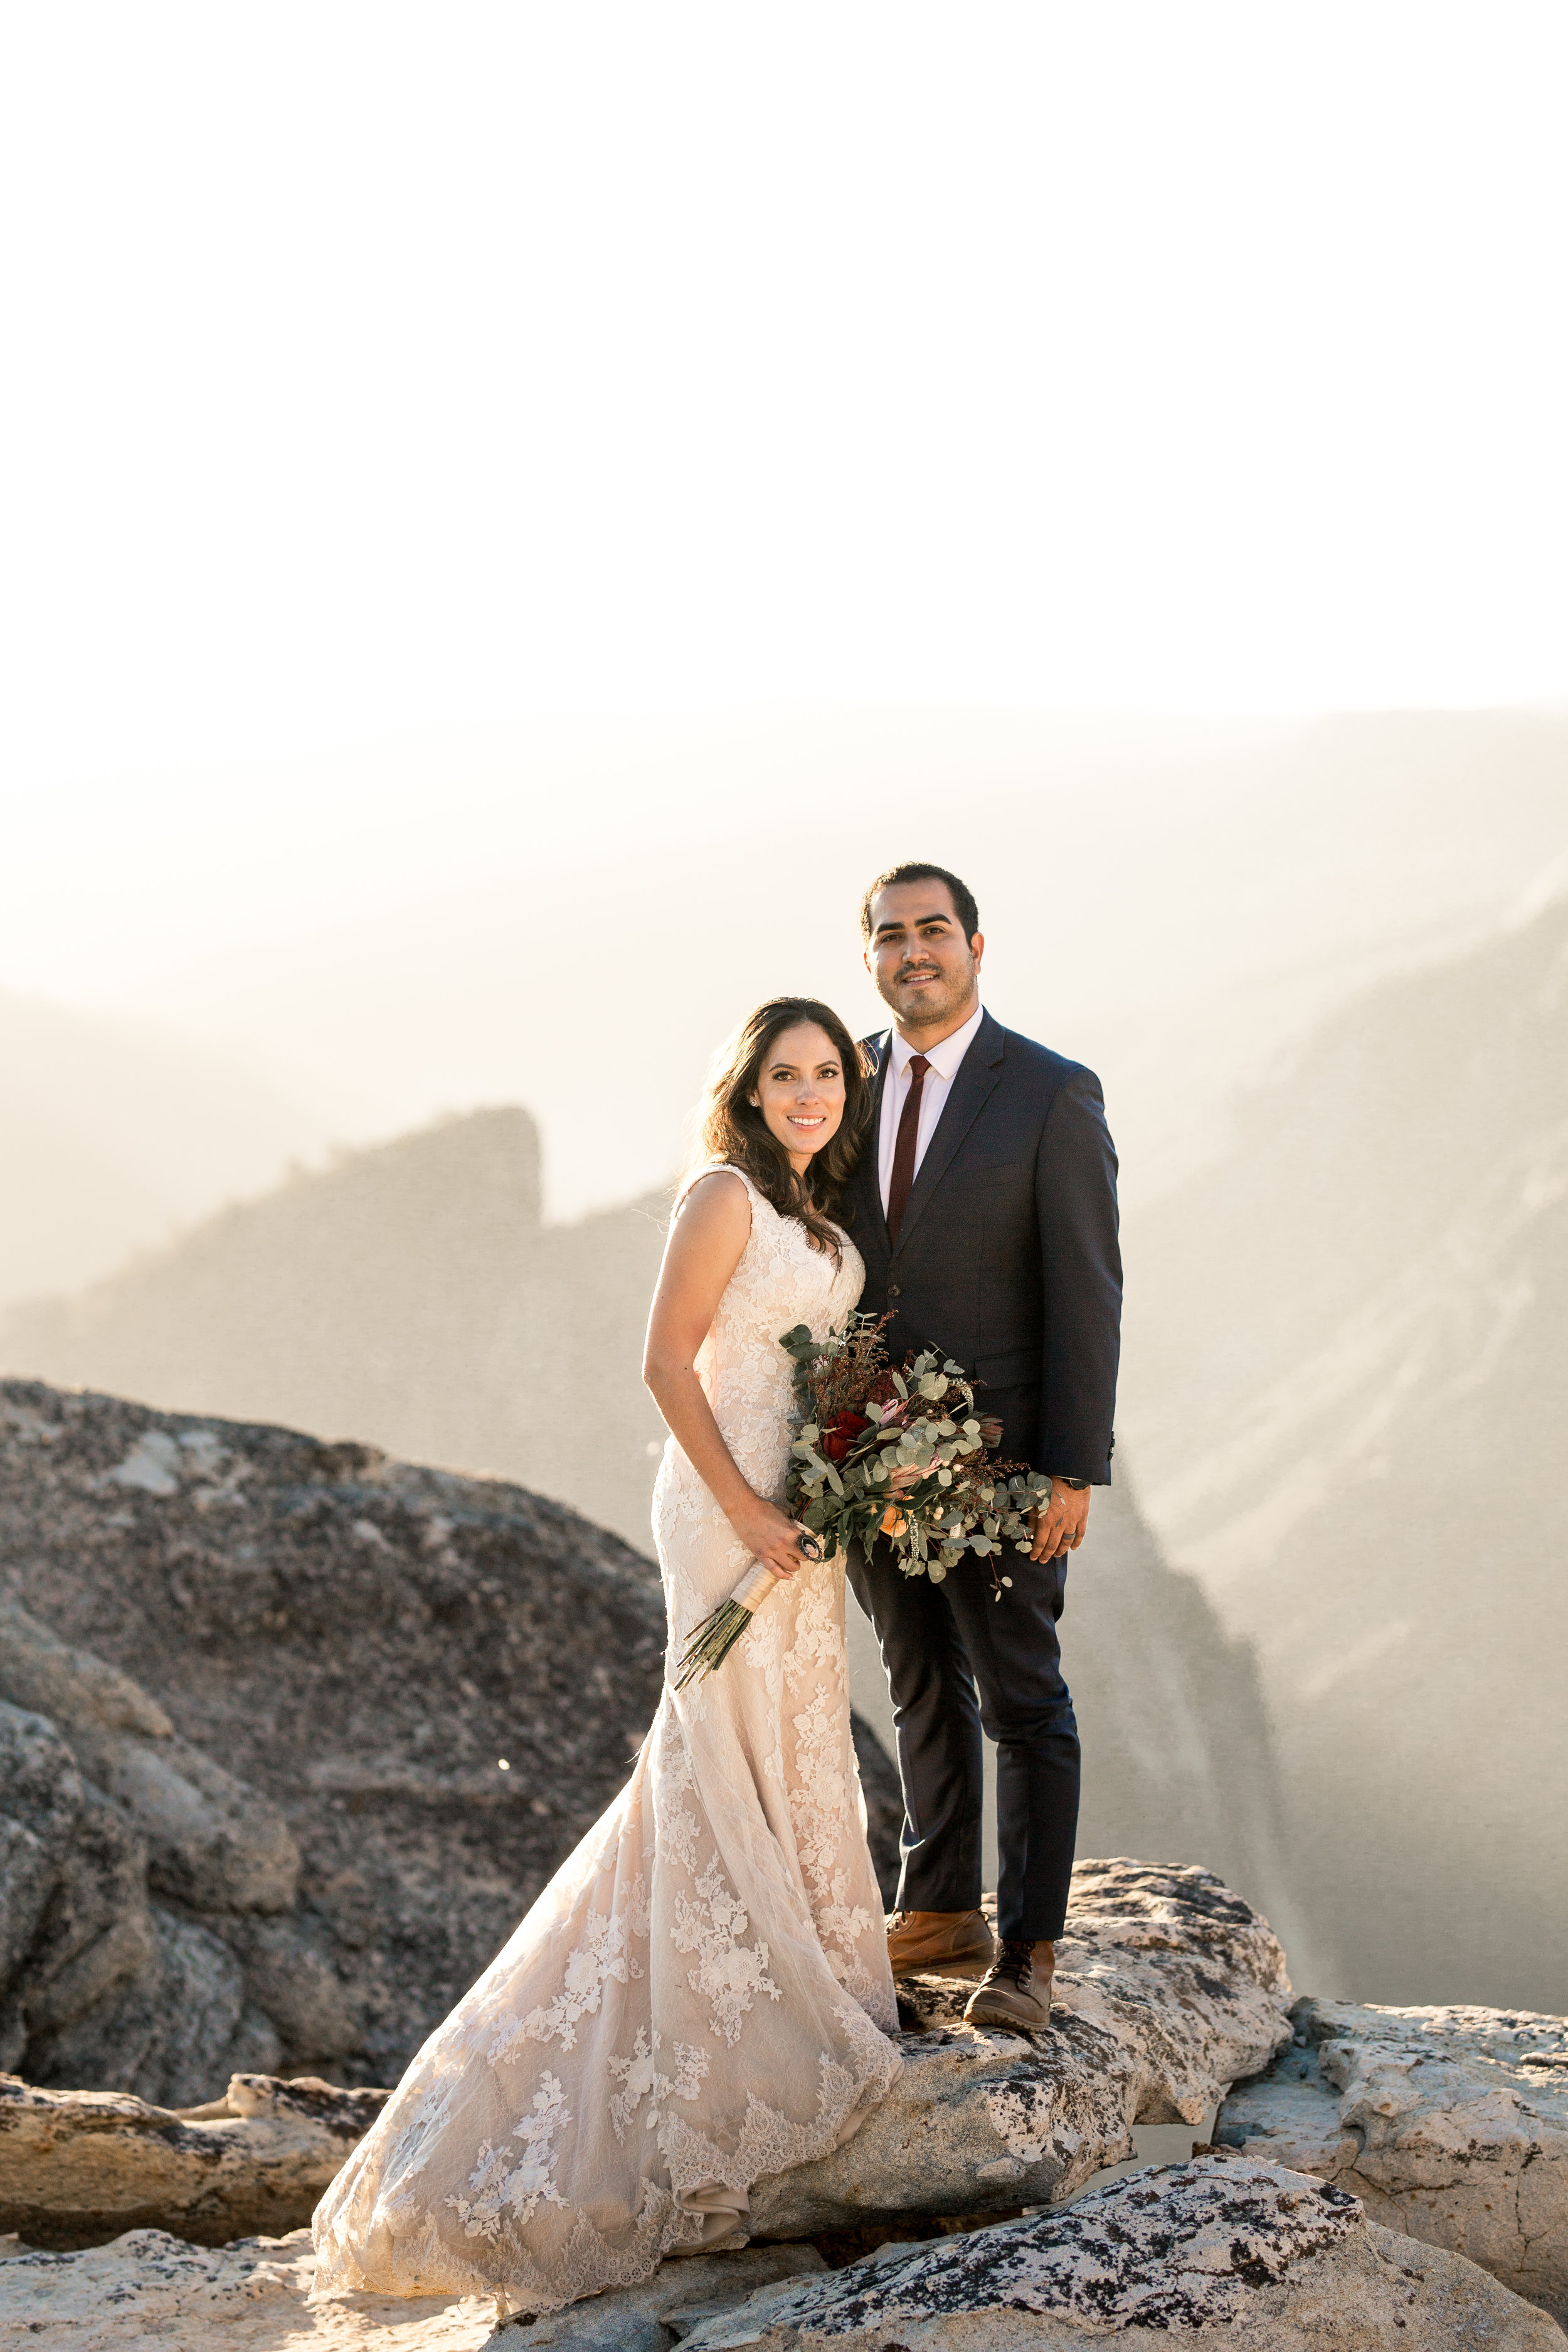 nicole-daacke-photography-intimate-elopement-wedding-yosemite-national-park-california-taft-point-sunset-photos-yosemite-valley-tunnel-view-first-look-sunrise-golden-granite-hiking-adventure-wedding-adventurous-elopement-photographer-91.jpg